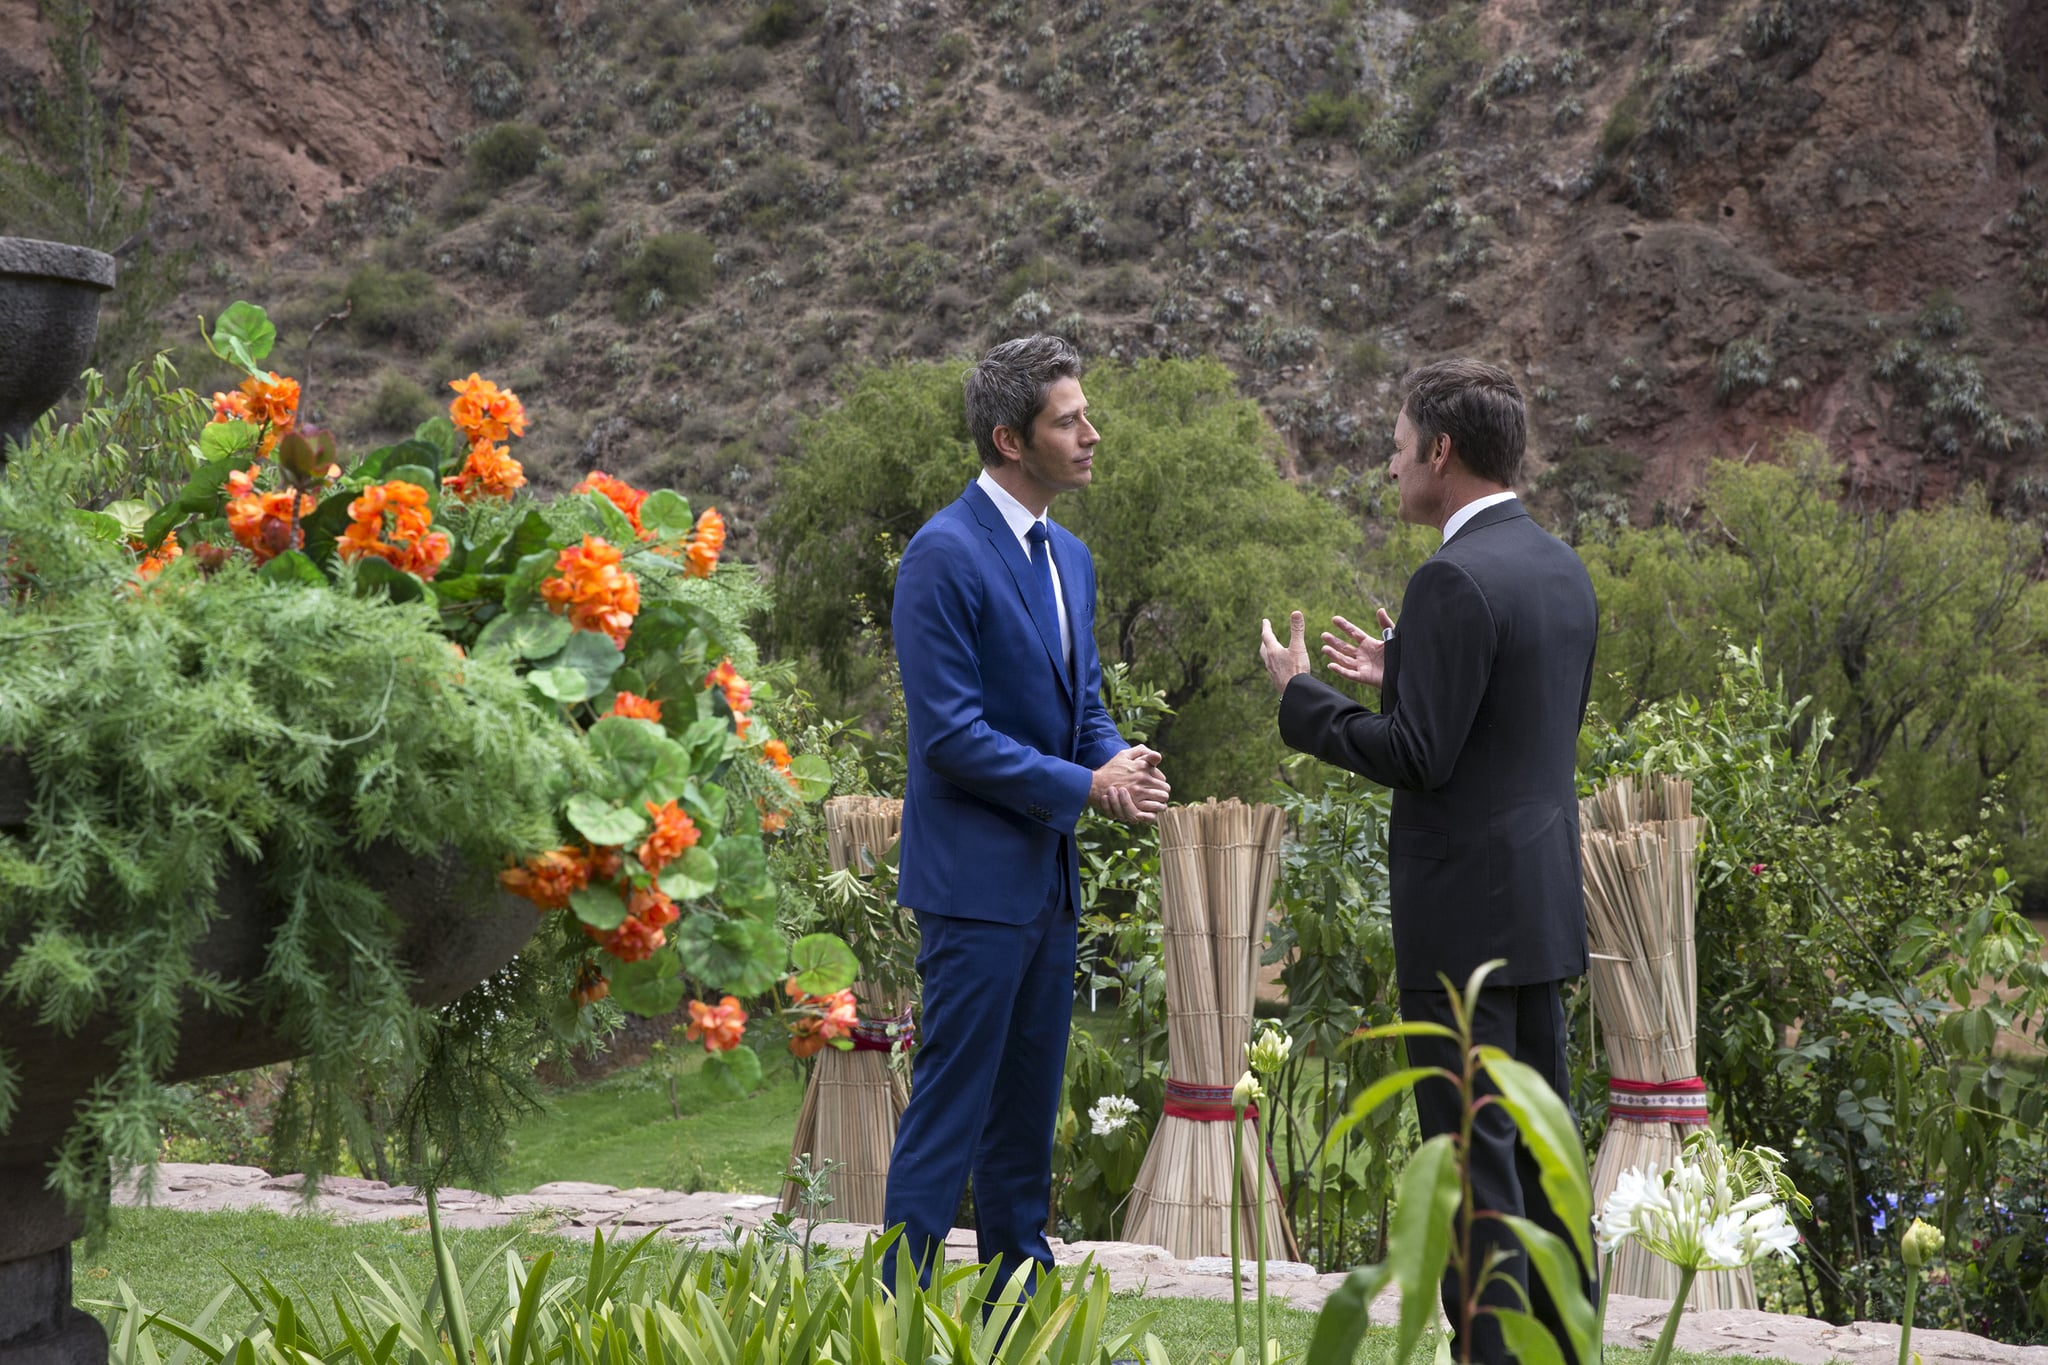 THE BACHELOR - Episode 2210 - The compelling live three-hour television event will begin with America watching along with the studio audience as Arie Luyendyk Jr.s journey to find love comes to its astonishing conclusion. The Bachelor prepares to make one of the most difficult choices of his life, having narrowed down the field to two women with whom he is madly in love - Becca K. and Lauren B. - and told both of them that he loves them. Who does Arie, after much soul-searching, see as his future wife? Find out on the season finale of The Bachelor, MONDAY, MARCH 5 (8:00-11:00 p.m. EST), on The ABC Television Network. (ABC/Paul Hebert)ARIE LUYENDYK JR., CHRIS HARRISON